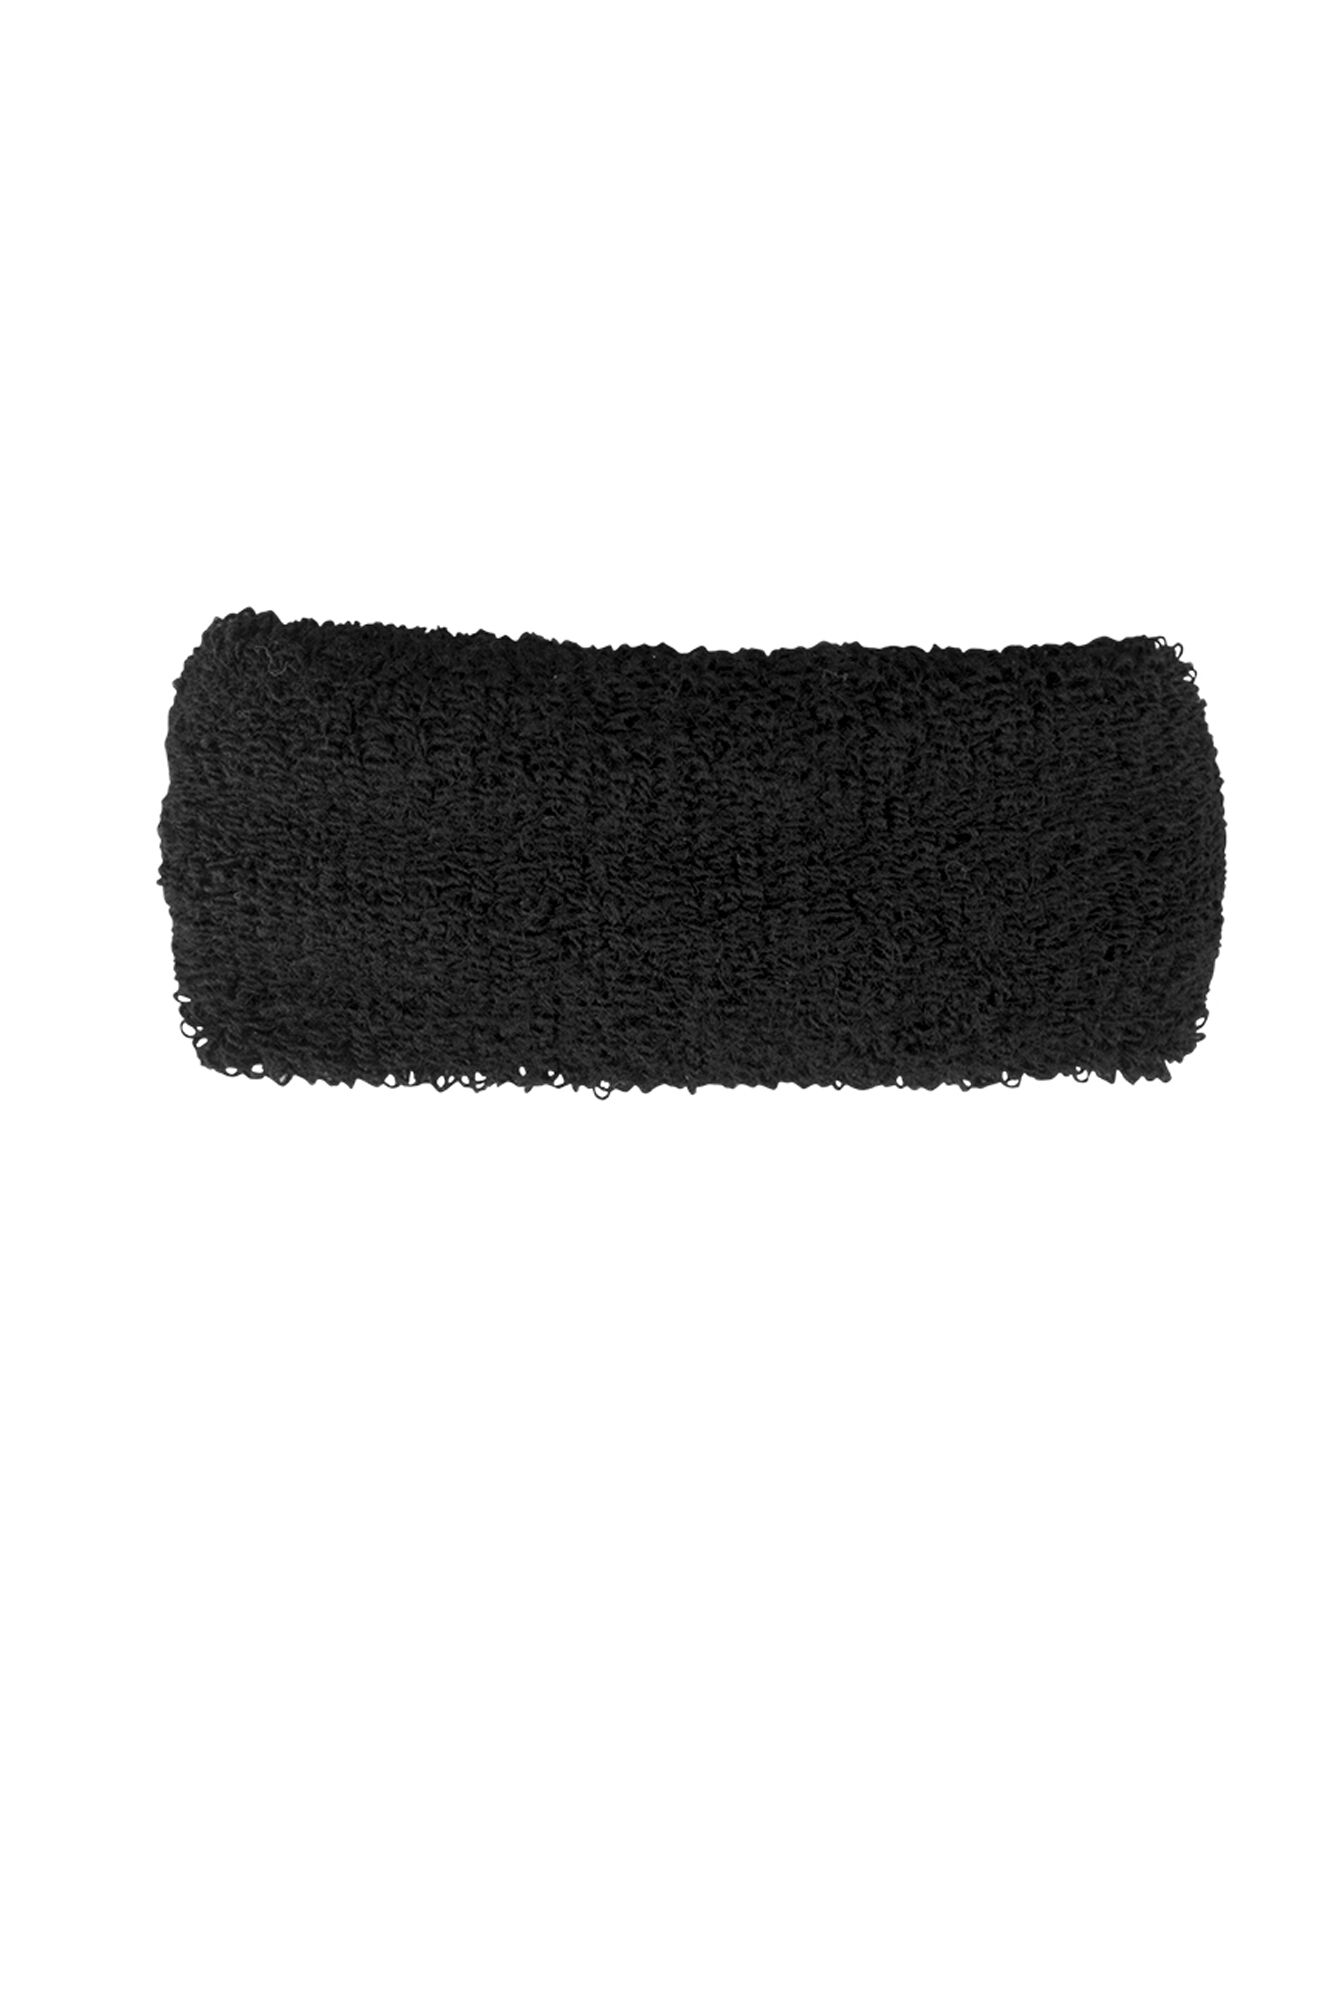 ENVII BIG ELASTIC BAND, BLACK